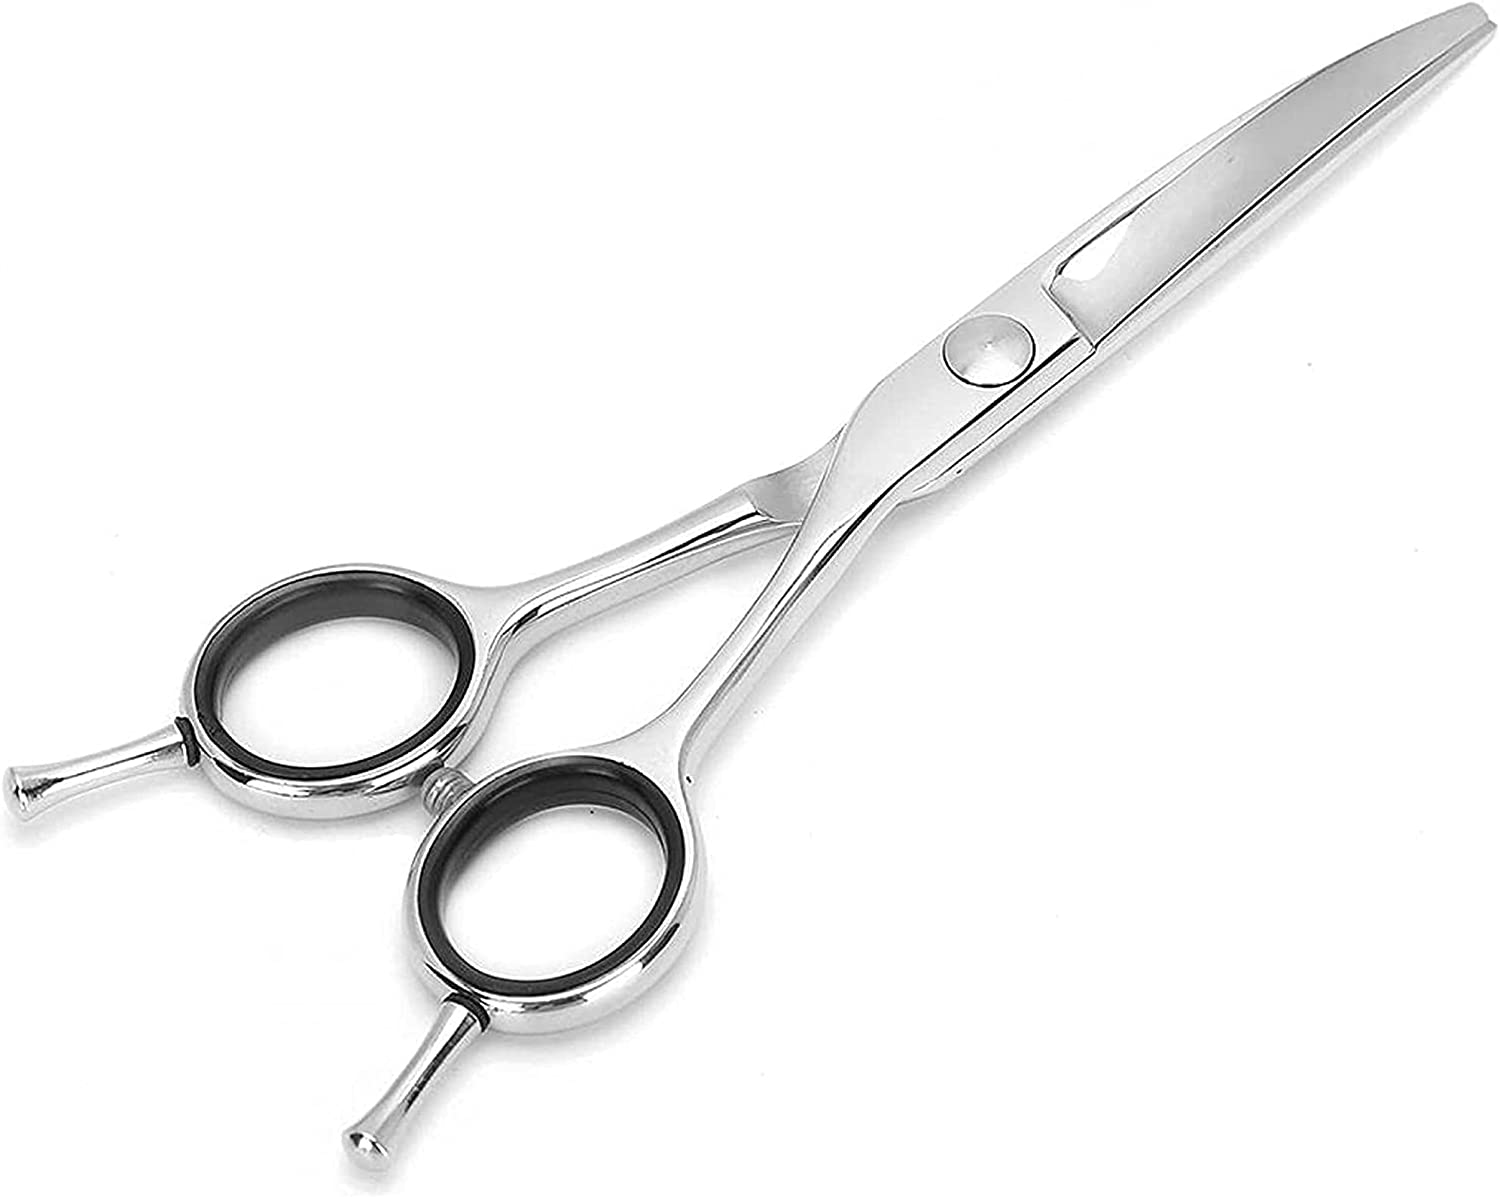 HLD Shears for Hair Excellent Cutting Sturdy Professional Sal Styling Tool Popular overseas